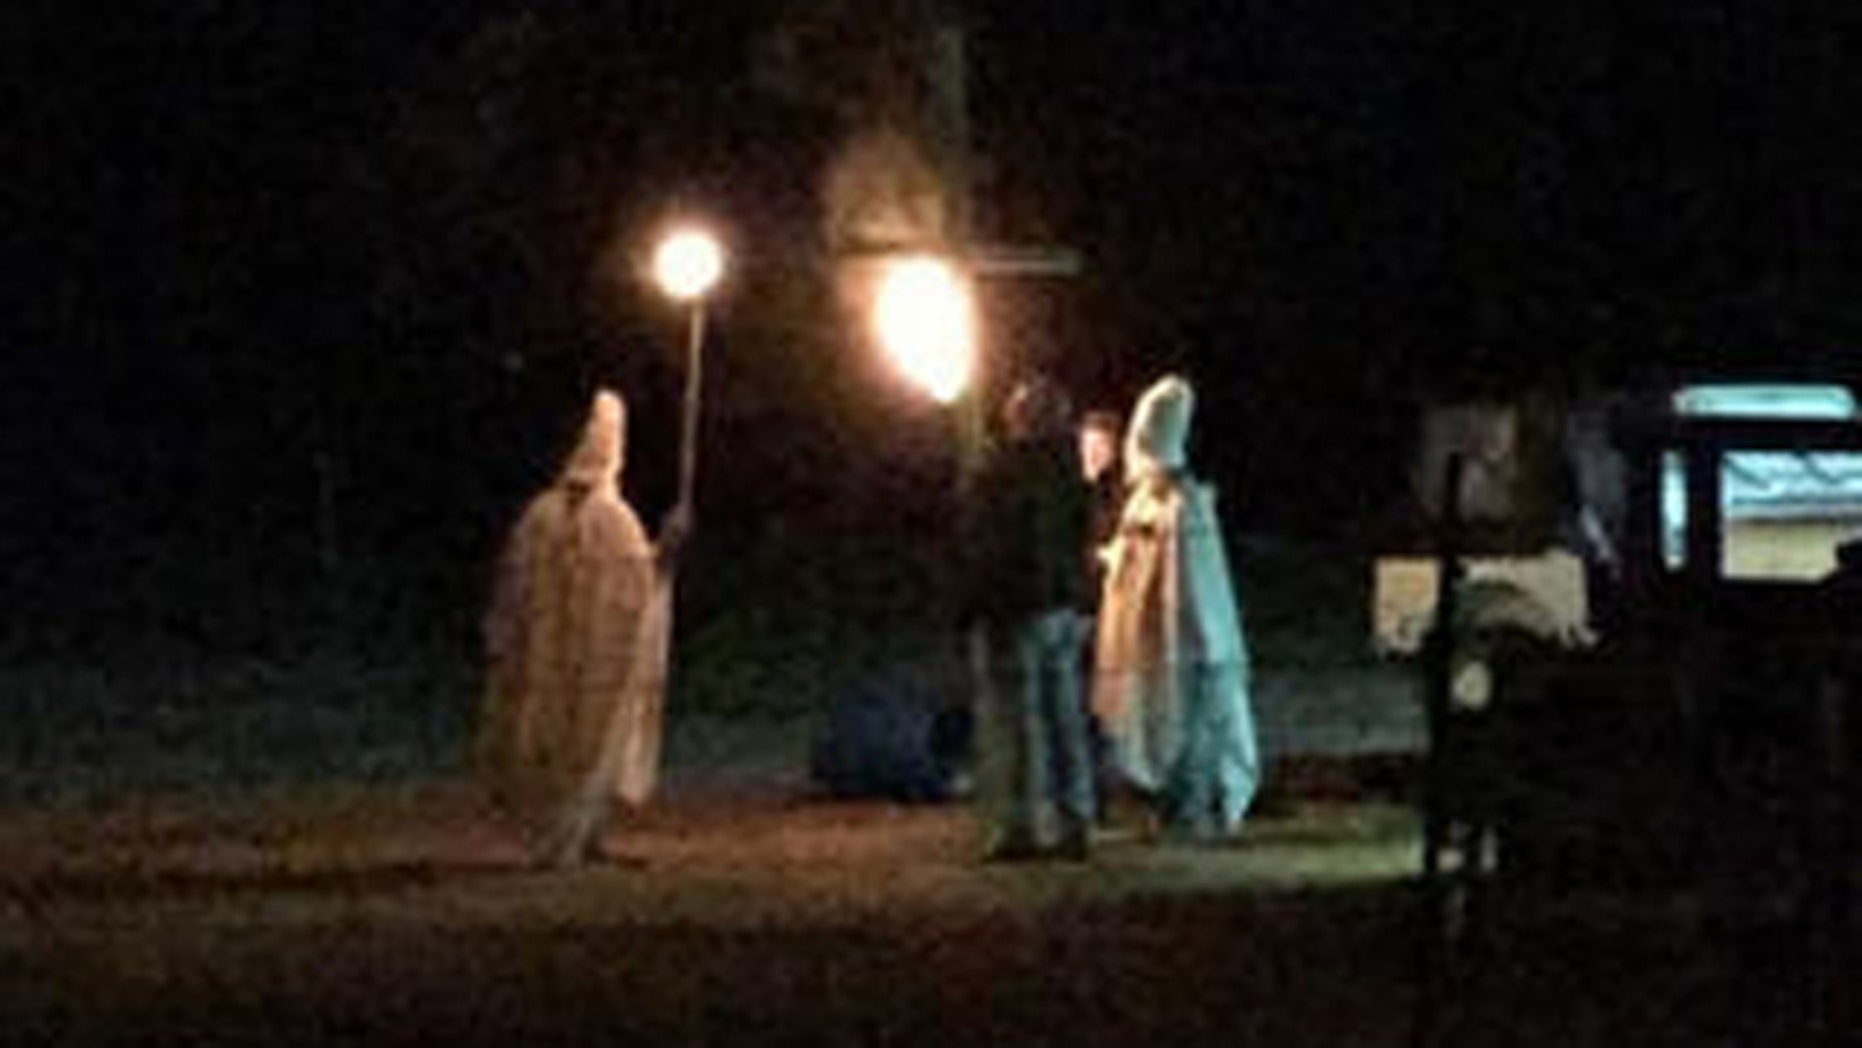 Oct. 31, 2015: This photo shows a group of people taking part in a mock Ku Klux Klan rally in Lahoma, Okla. The husband of Lahoma's mayor has since apologized for taking part in what authorities dubbed a 'Halloween prank gone wrong'. (Facebook)